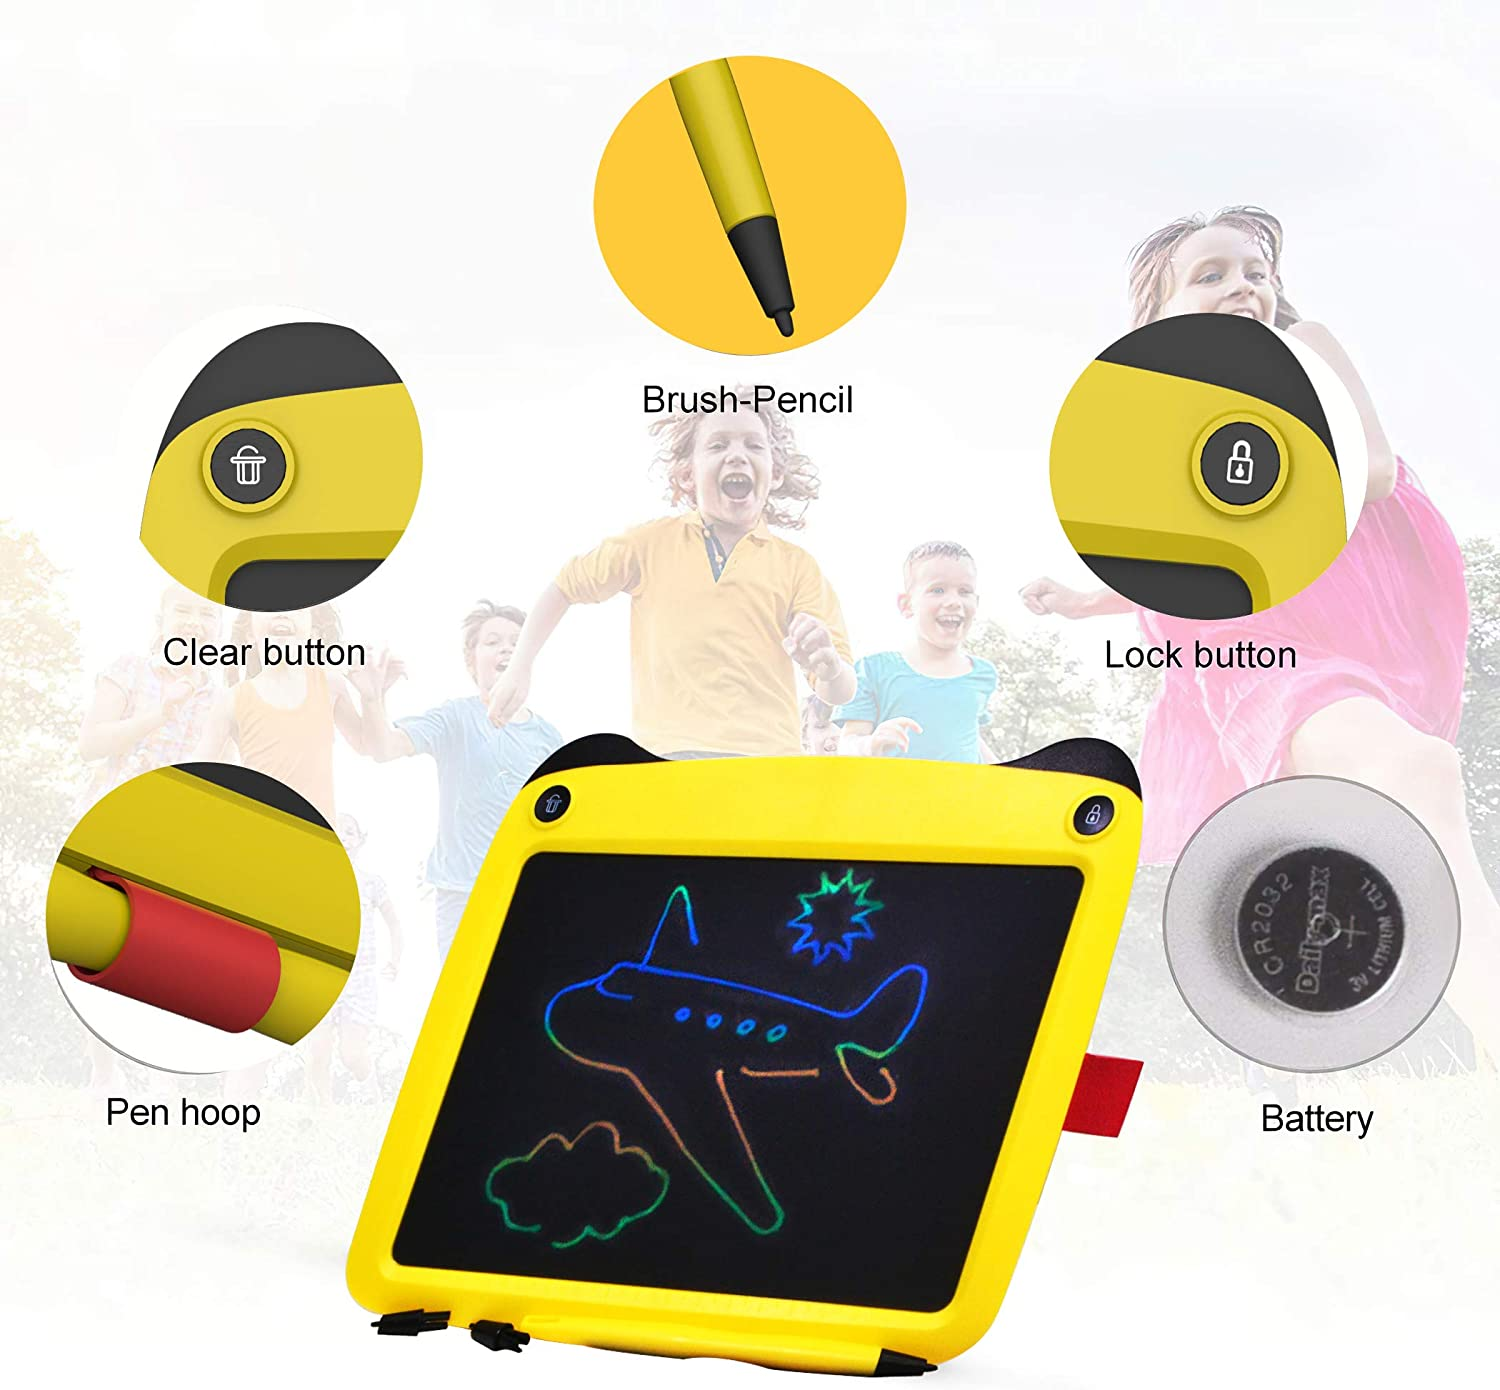 Educational and Learning Toy for 3-6 Years Old Boy and Girls kids drawing tablet lcd writing drawing board pad,Colorful Toddler Doodle Board Drawing Tablet Erasable Reusable Electronic Drawing Pads